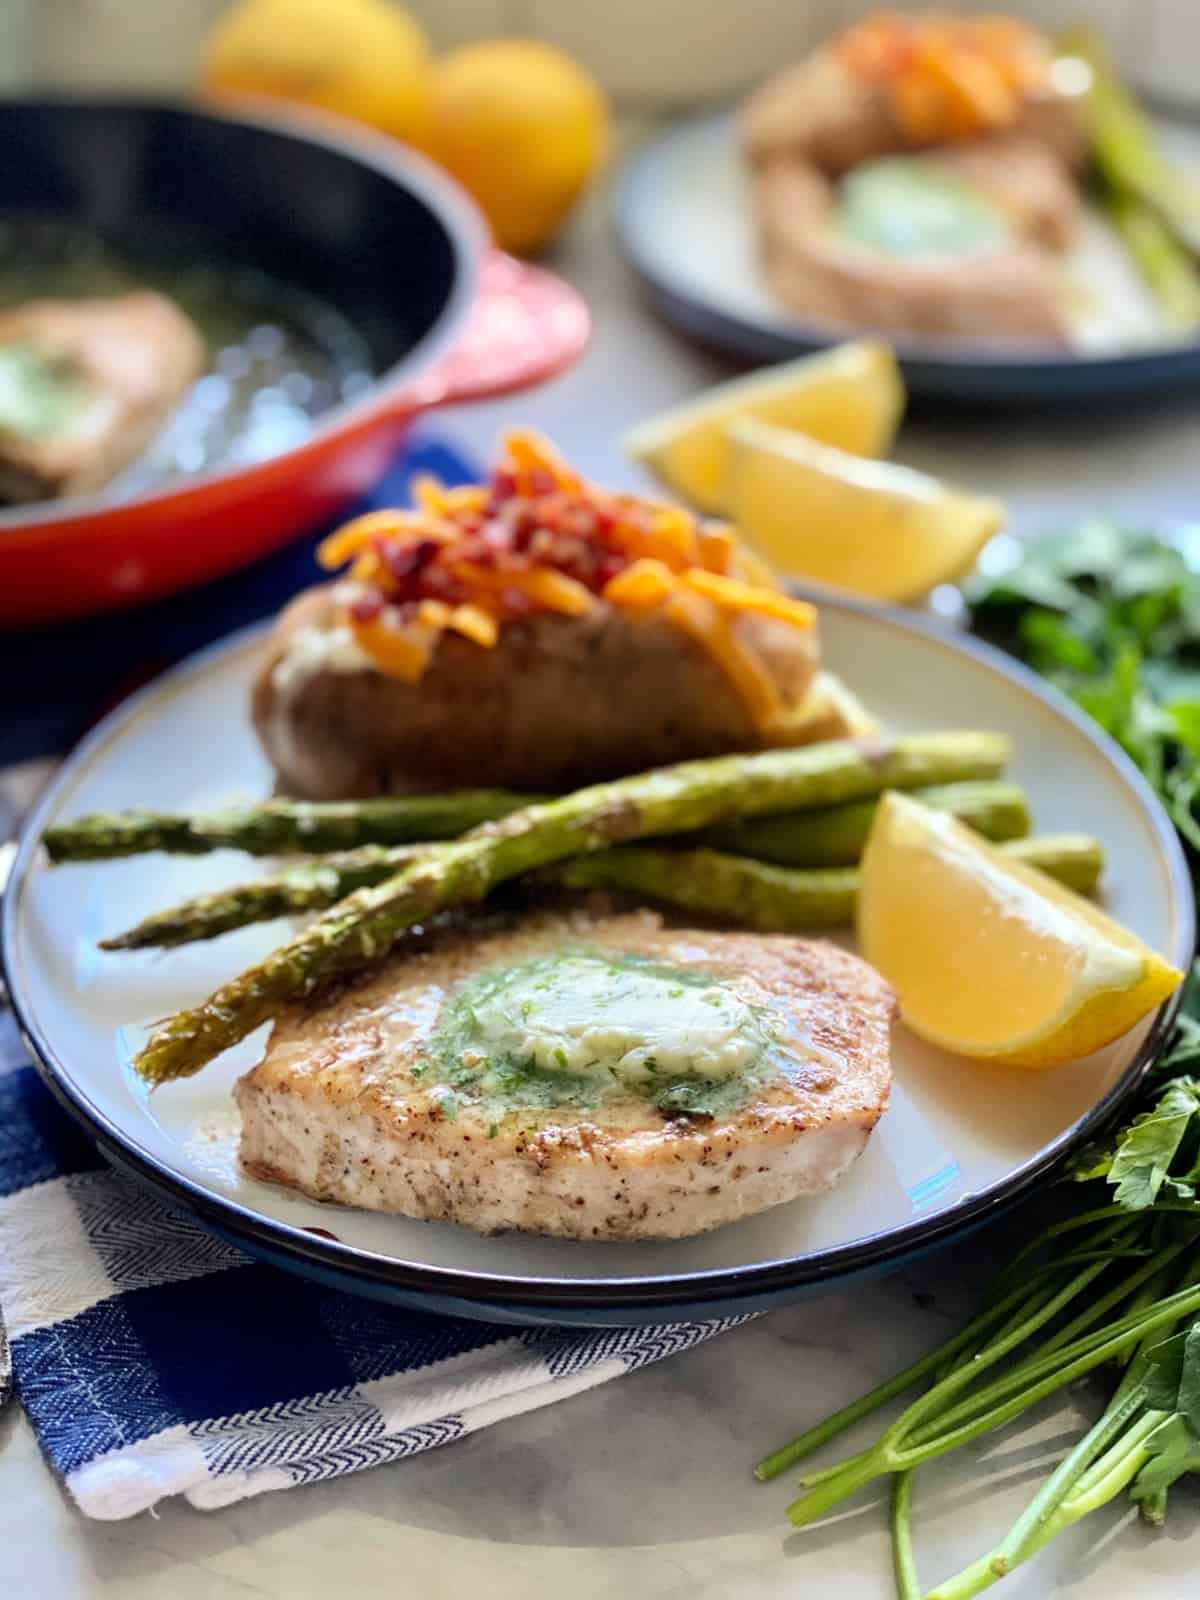 White plate filled with a swordfish steak with butter, asparagus, and a baked potato.